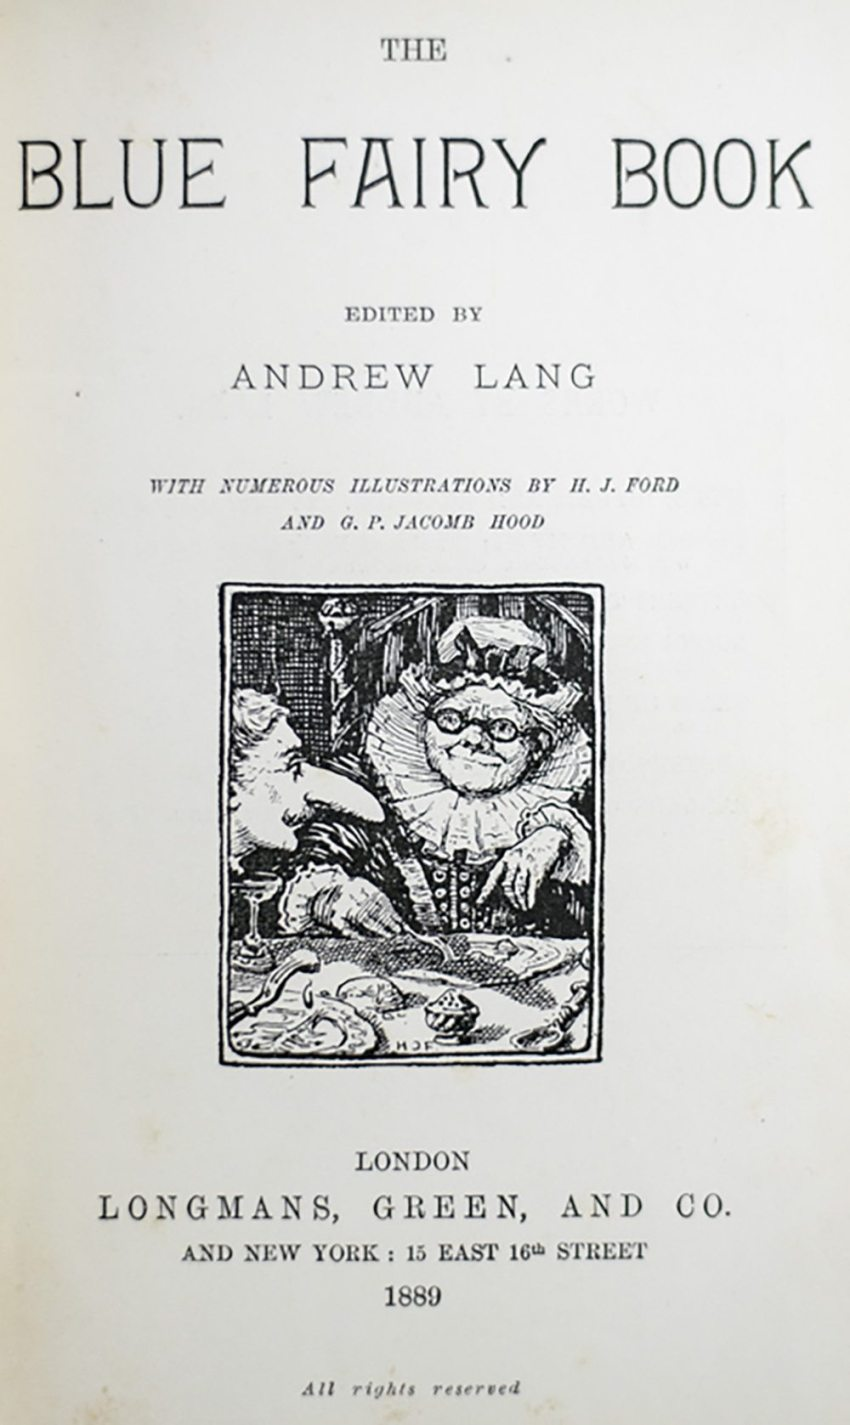 The Fairy Books: Blue (1889); Red (1890); Green (1892); Yellow (1894); Pink; (1897); Grey (1900); Violet (1901); Crimson (1903); Brown (1904); Orange (1906); Olive (1907); Lilac (1910) [with The Blue Poetry Book (1891); The True Story Book (1893); The Red True Story Book (1895); The Animal Story Book (1896); The Arabian Nights Entertainments (1898); The Red Book of Animal Stories (1899); The Book of Romance (1902); The Red Romance Book (1905)].